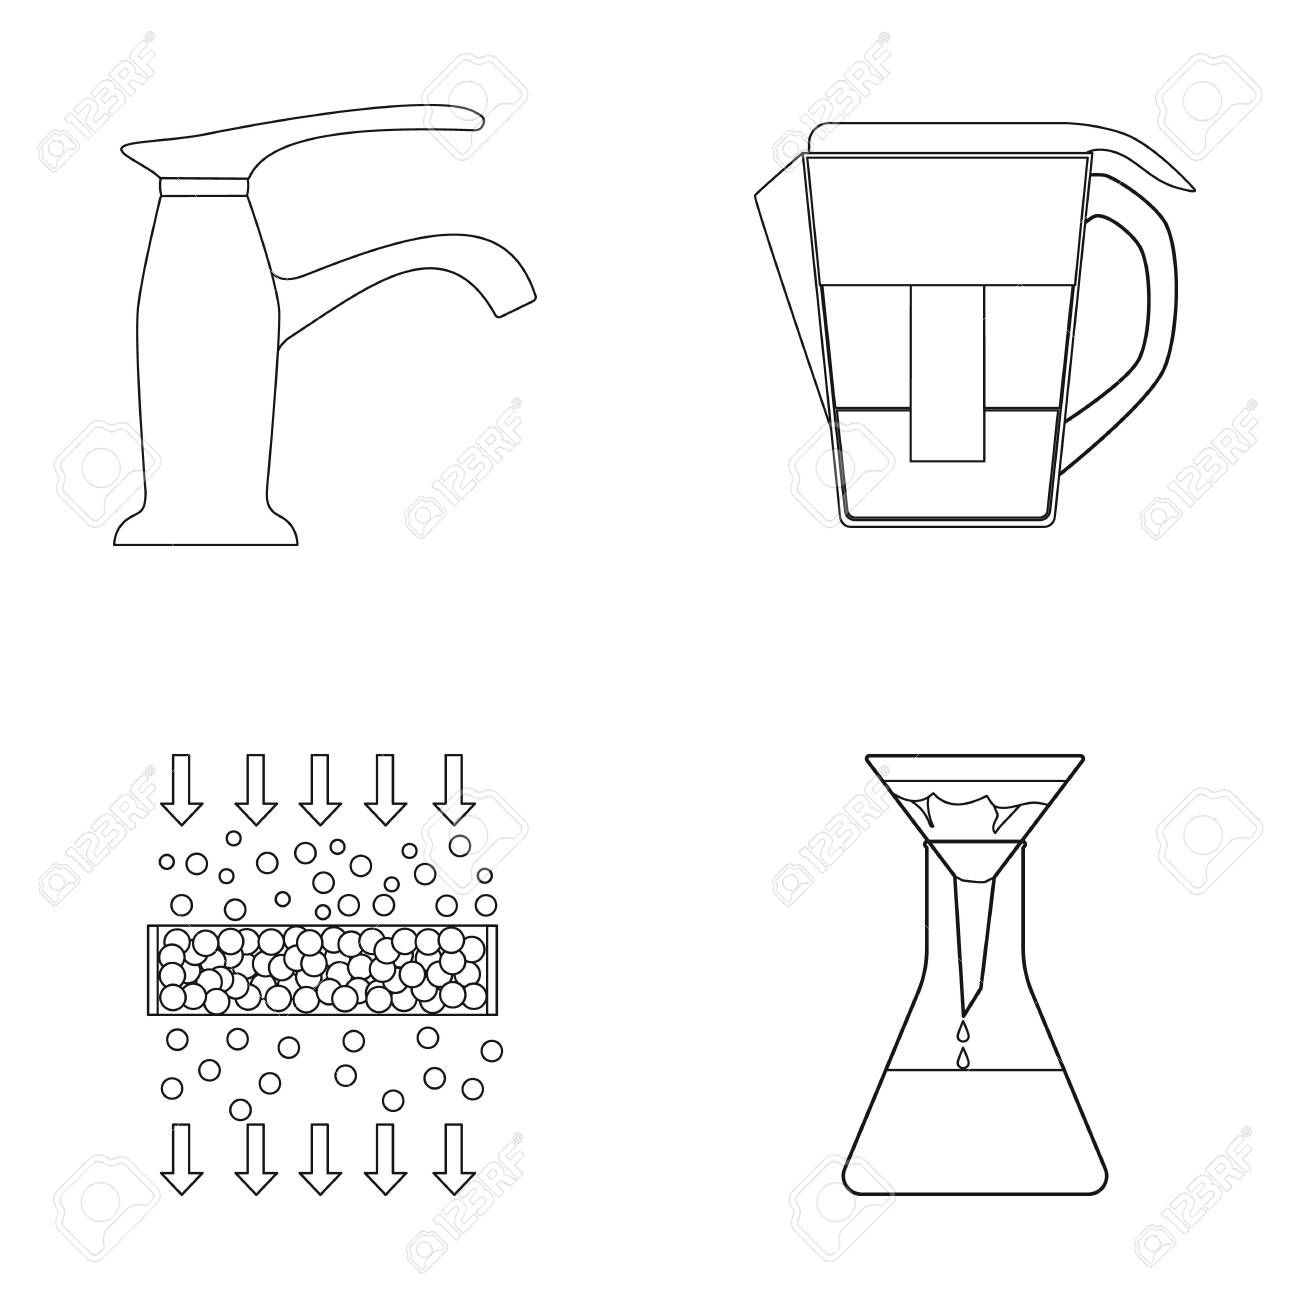 Filter Filtration Nature Eco Bio Water System Diagram Set Collection Icons